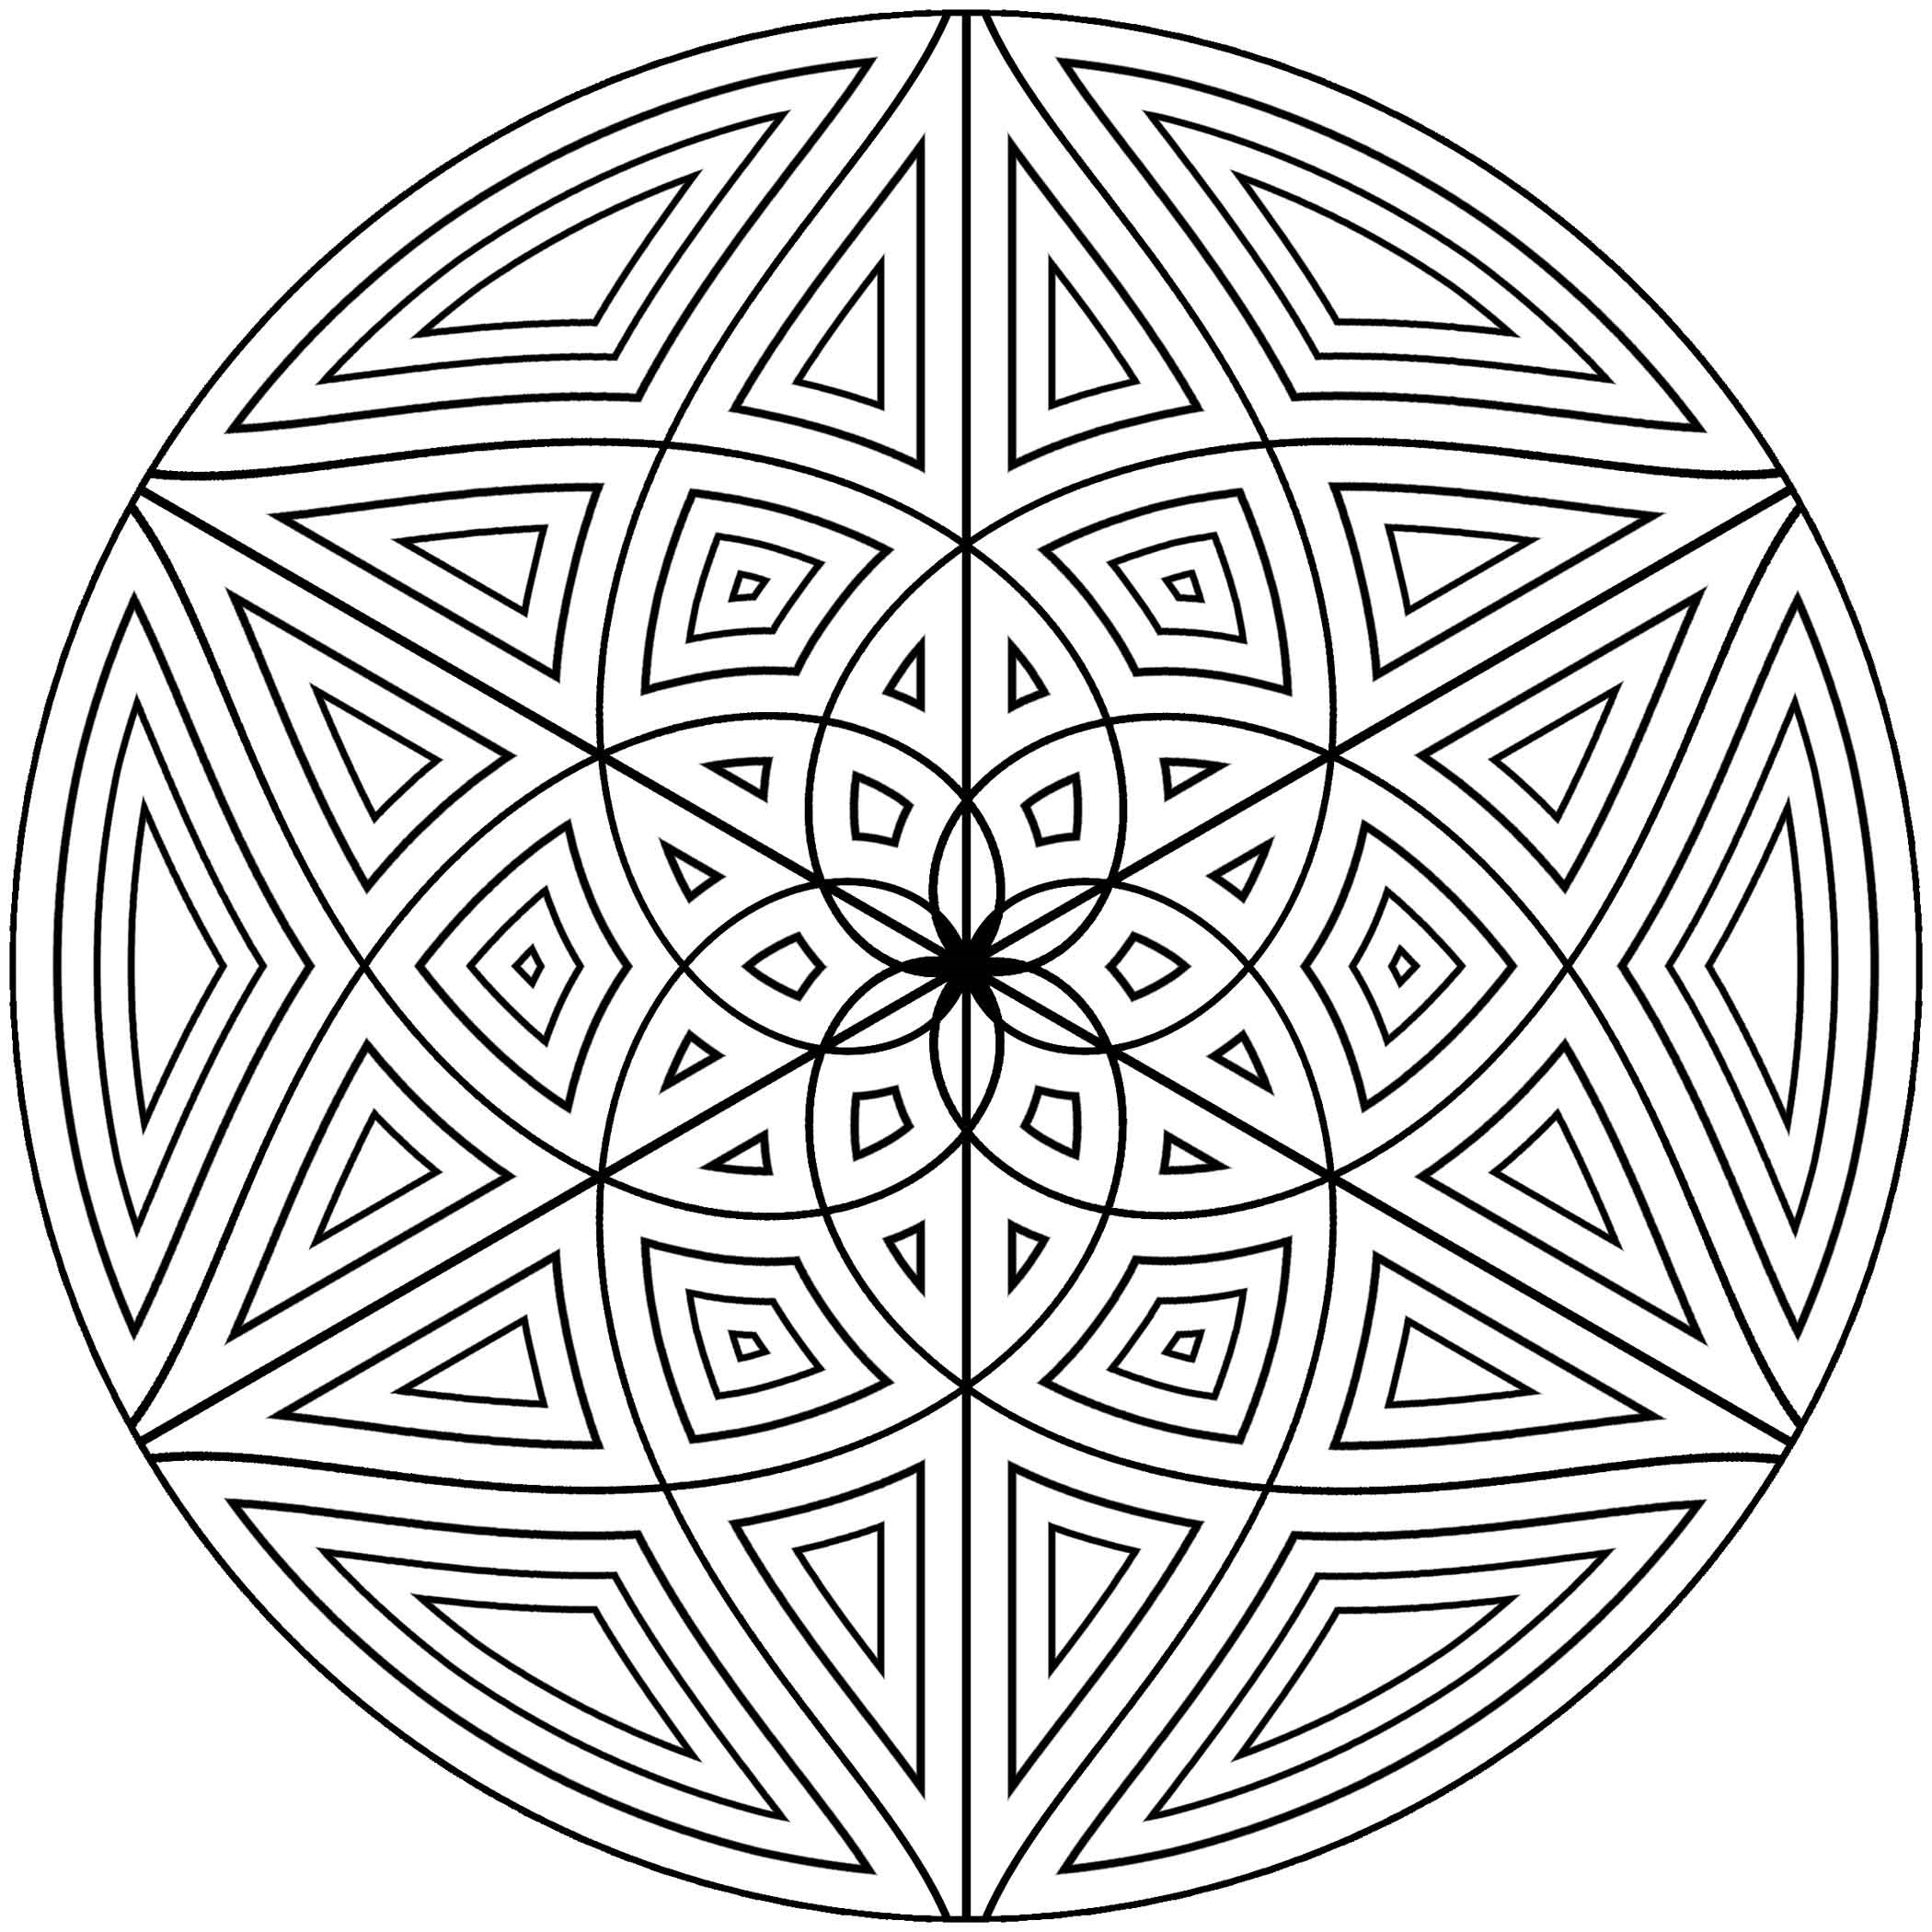 printable coloring designs free printable geometric coloring pages for adults designs printable coloring